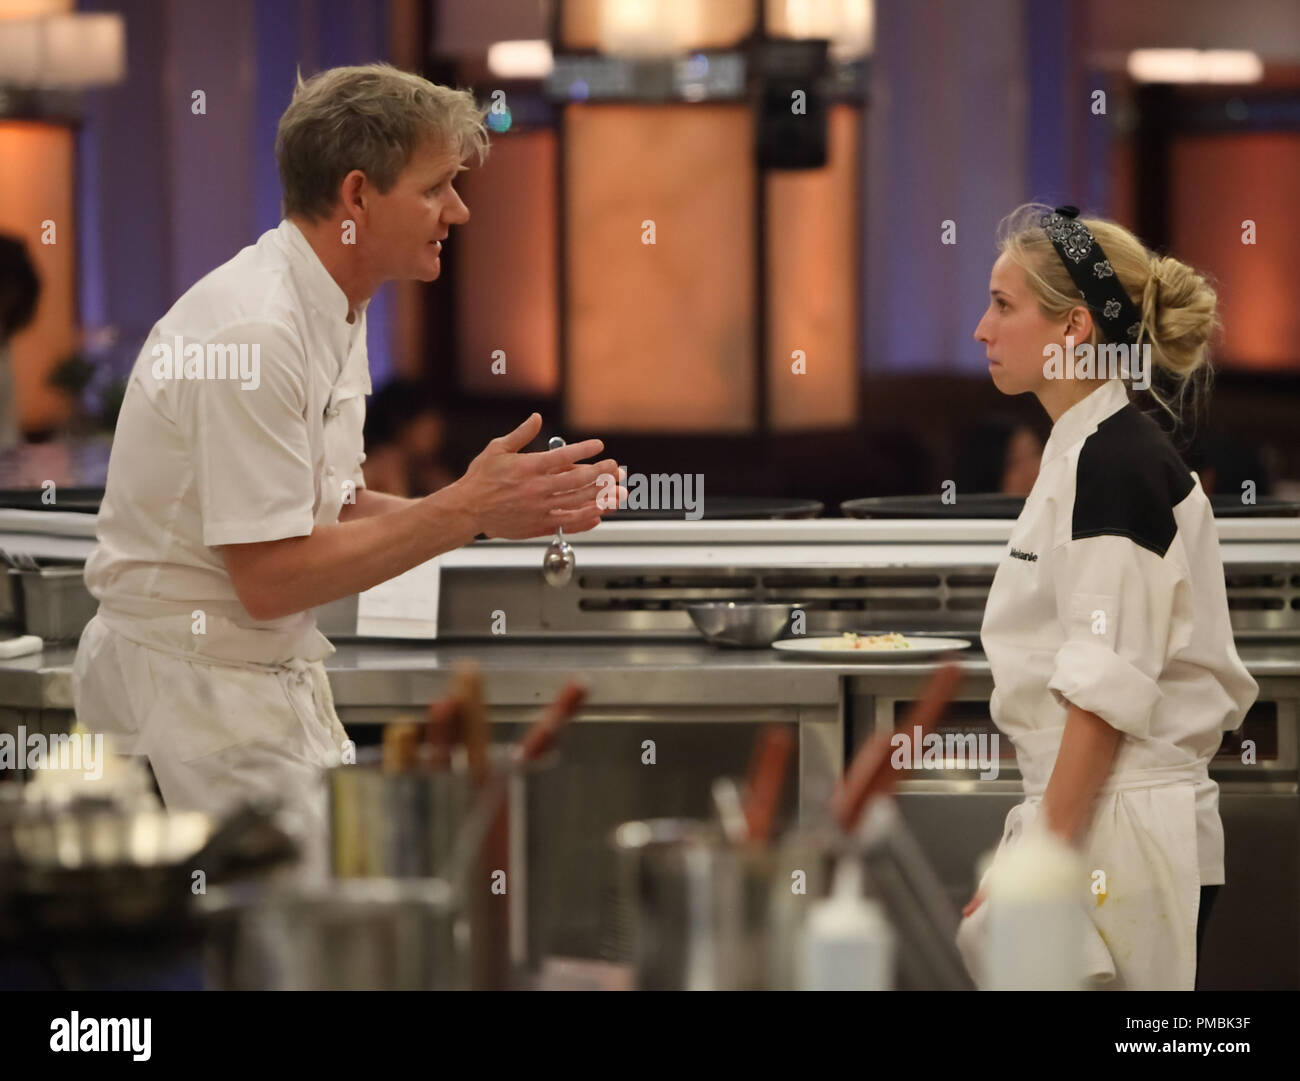 Hell's Kitchen Episodes | Hell S Kitchen Chef Ramsay L Directs Contestant Melanie R During